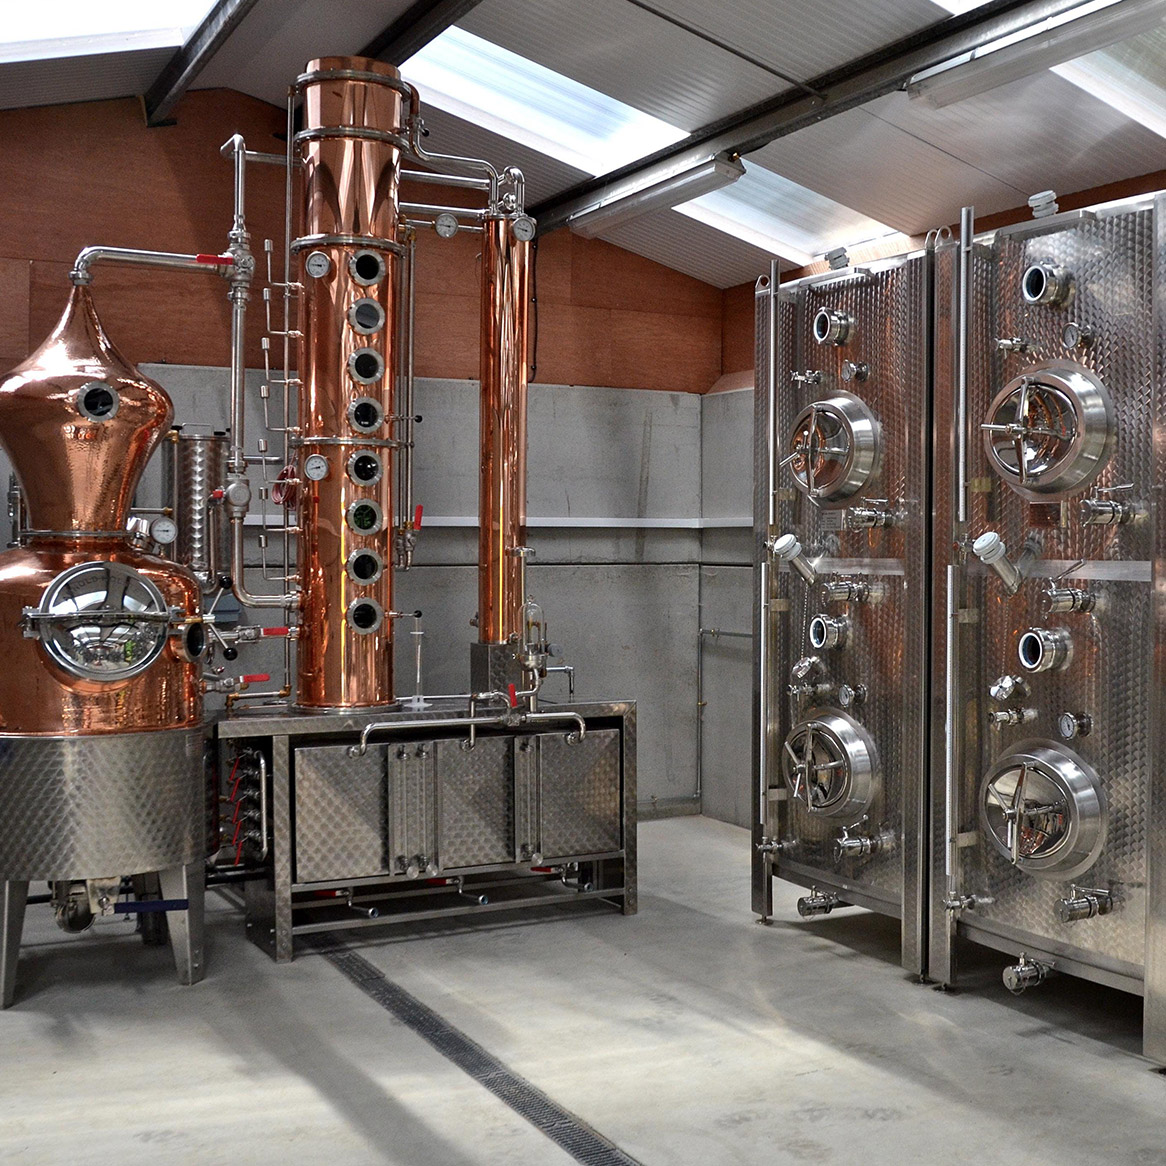 Silent pool gin distillery